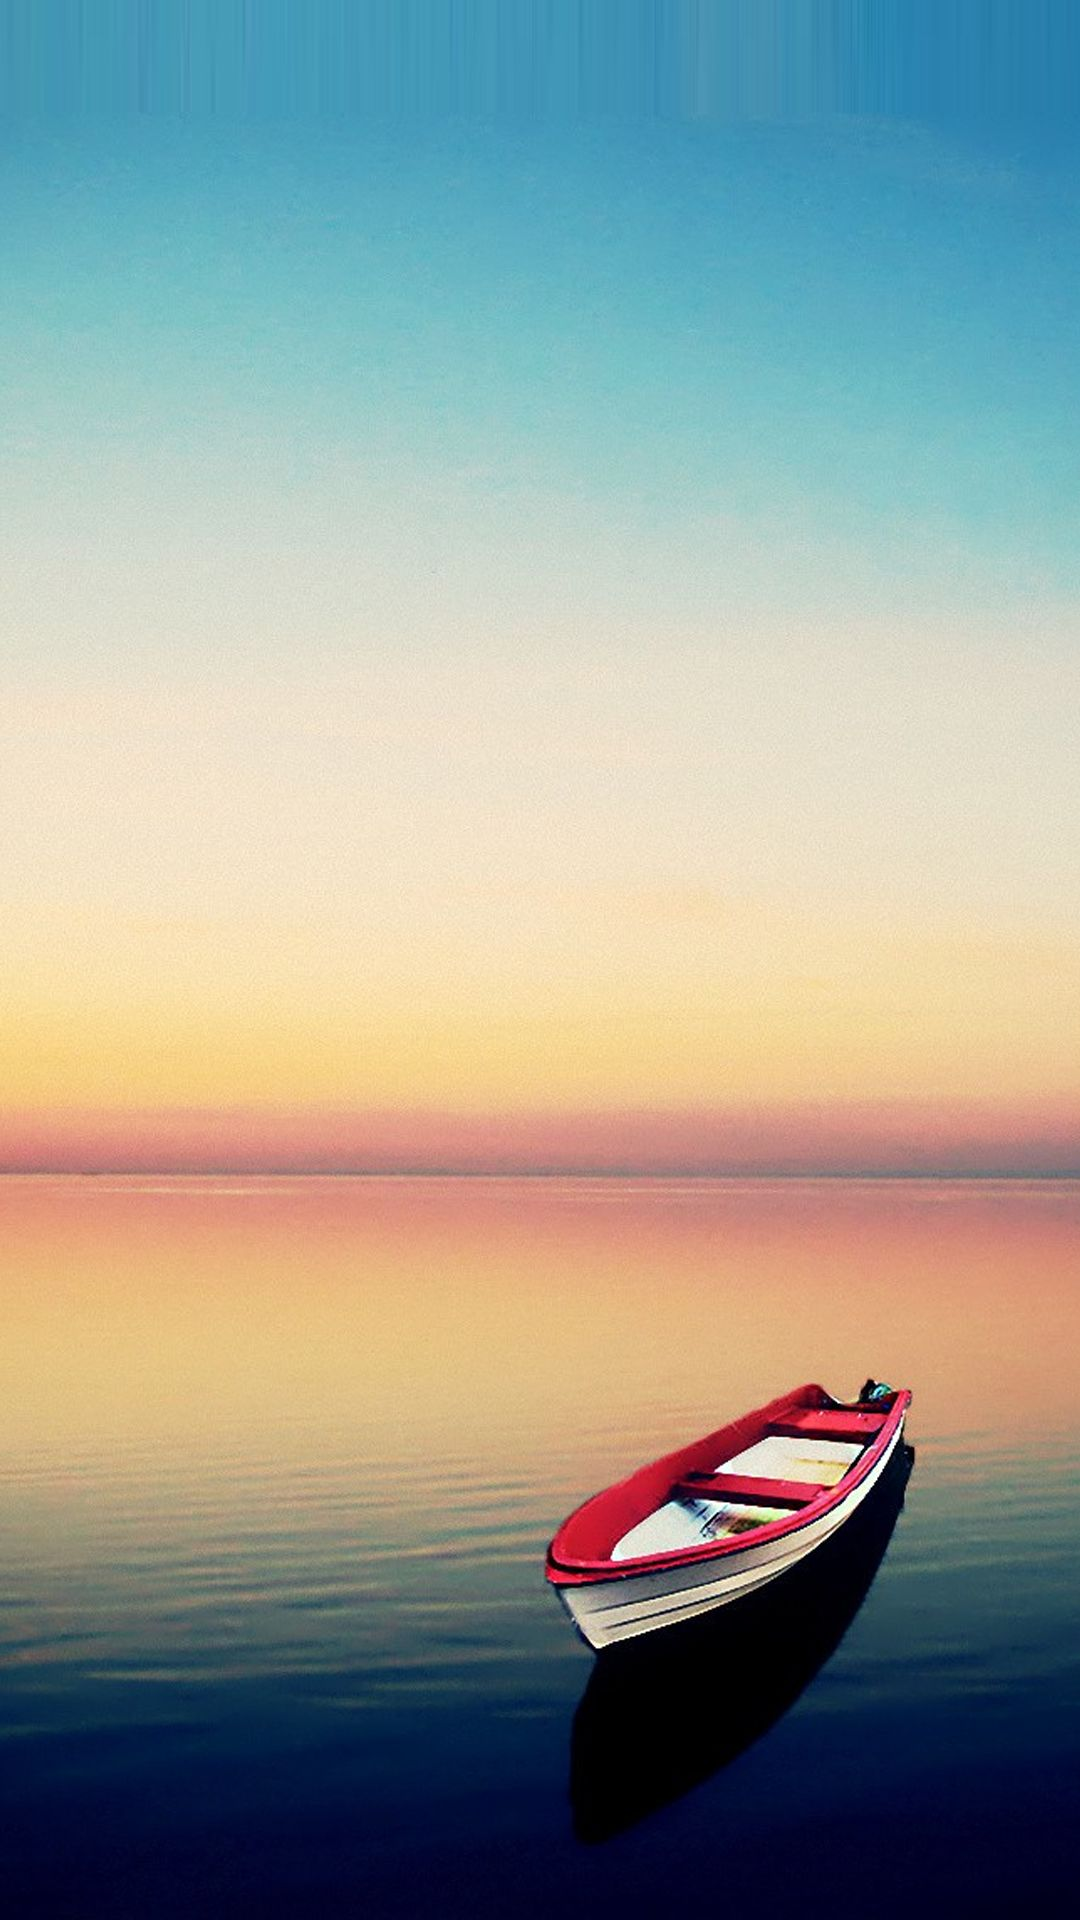 Boat At Sunset Smartphone Hd Wallpapers Samsung Galaxy Wallpaper Samsung Wallpaper Hd Phone Wallpapers